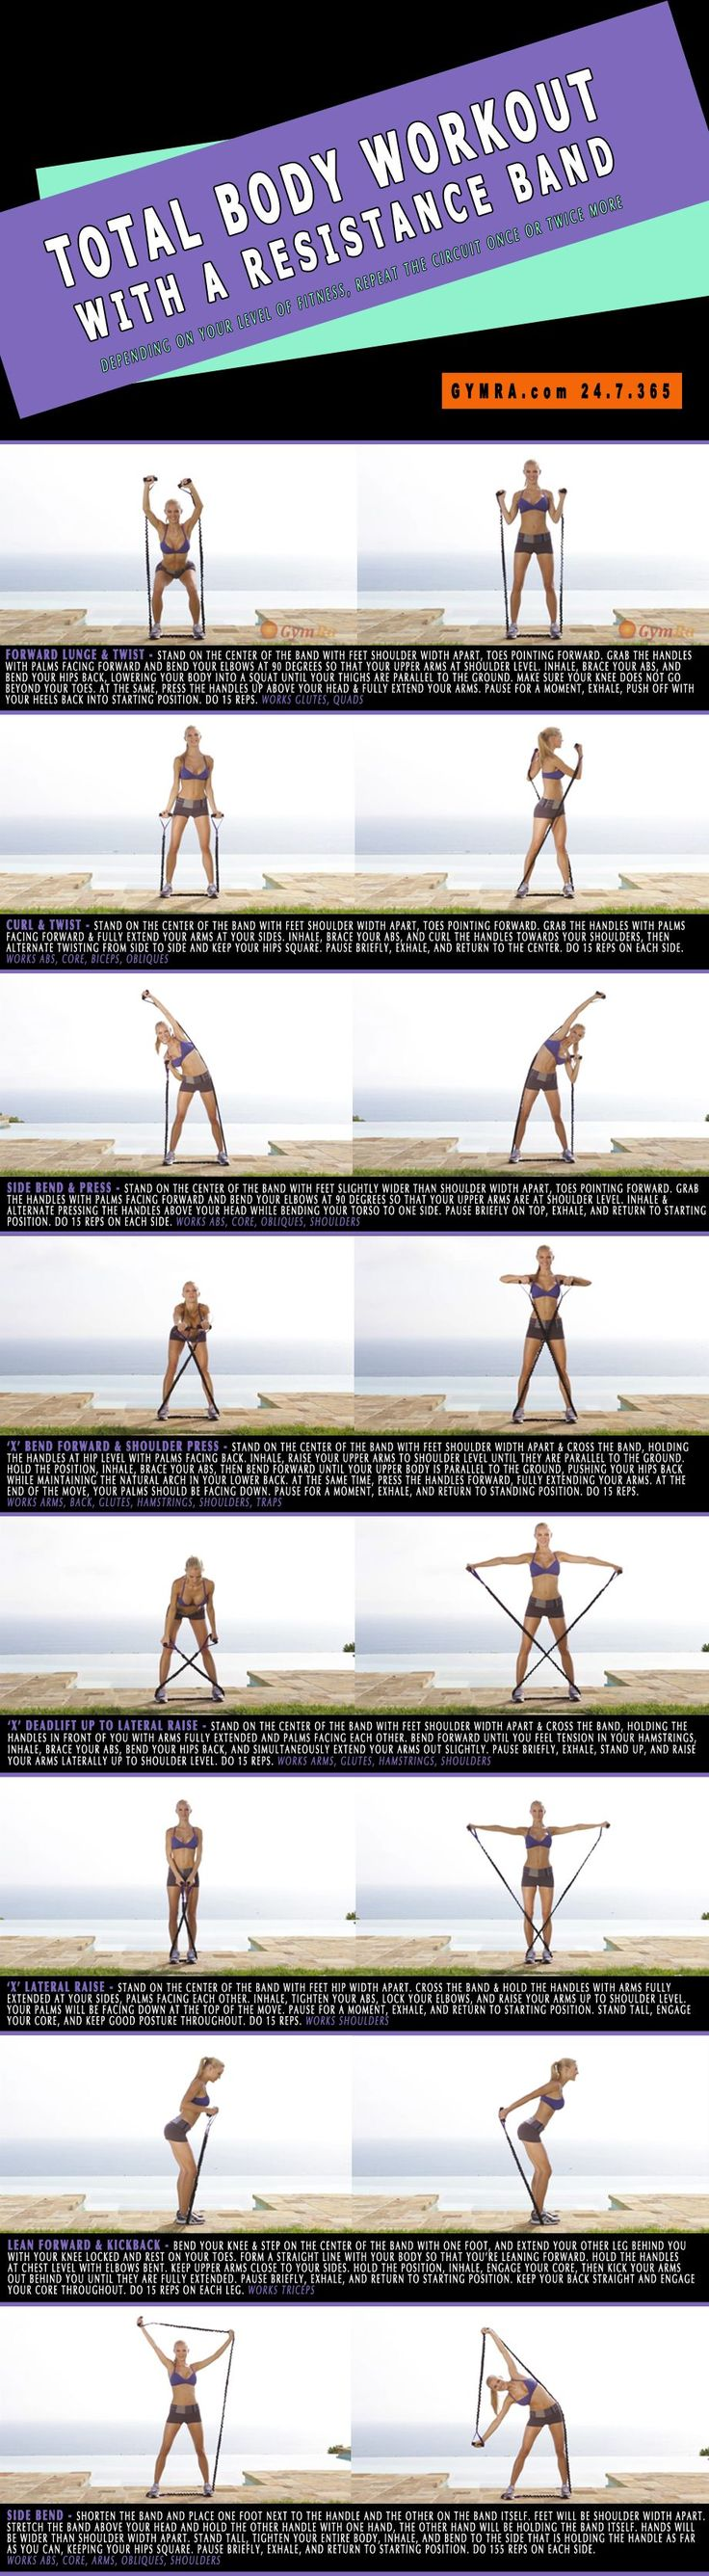 Resistance band workouts | Posted By: NewHowToLoseBellyFat.com